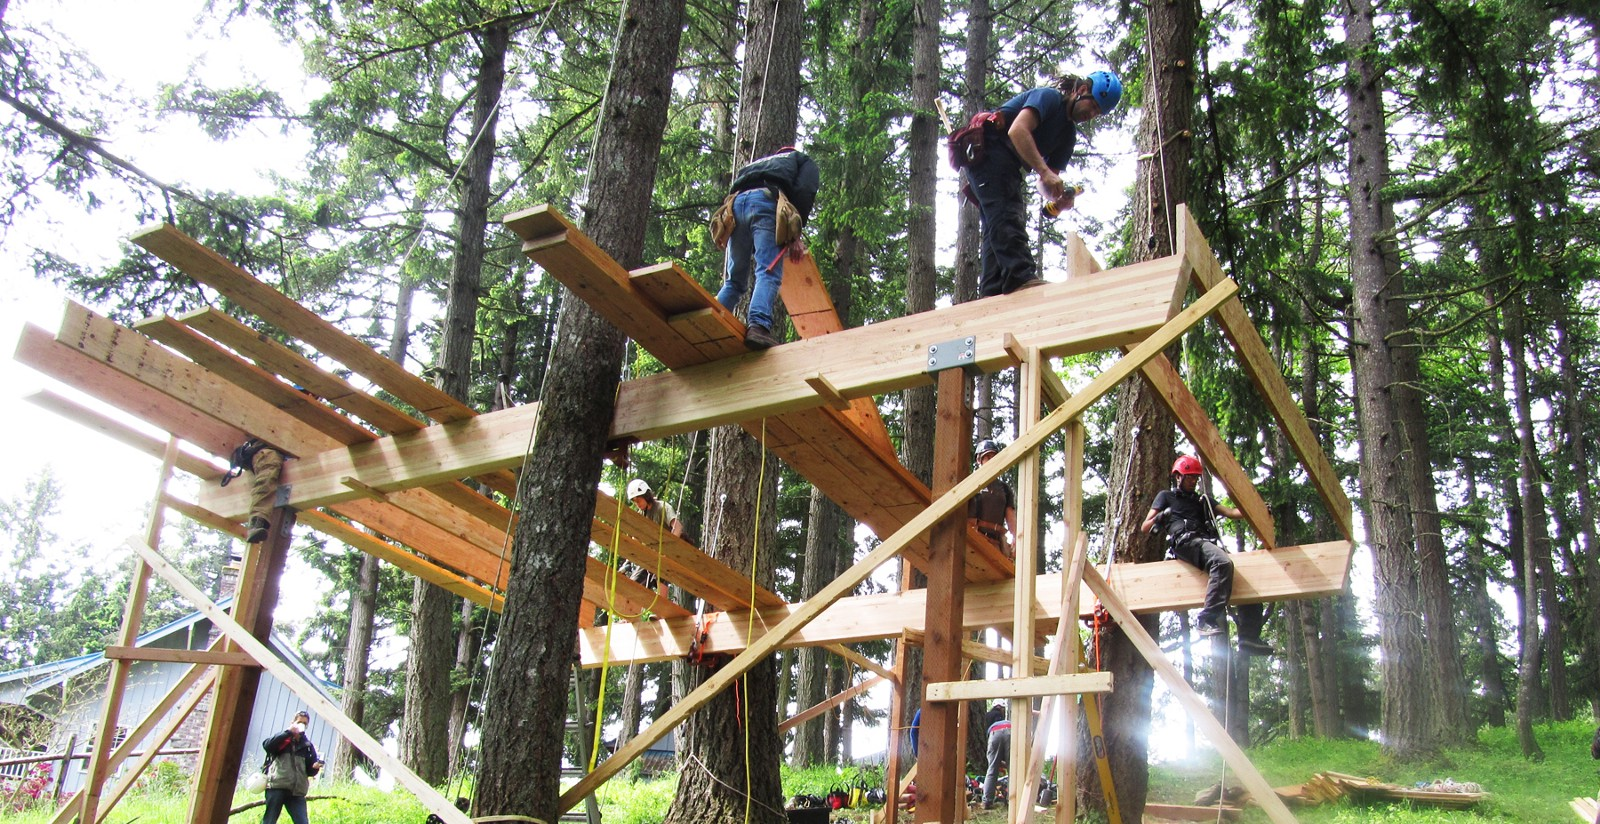 Want to help build a treehouse?  A project on TravelStarter is offering just that.